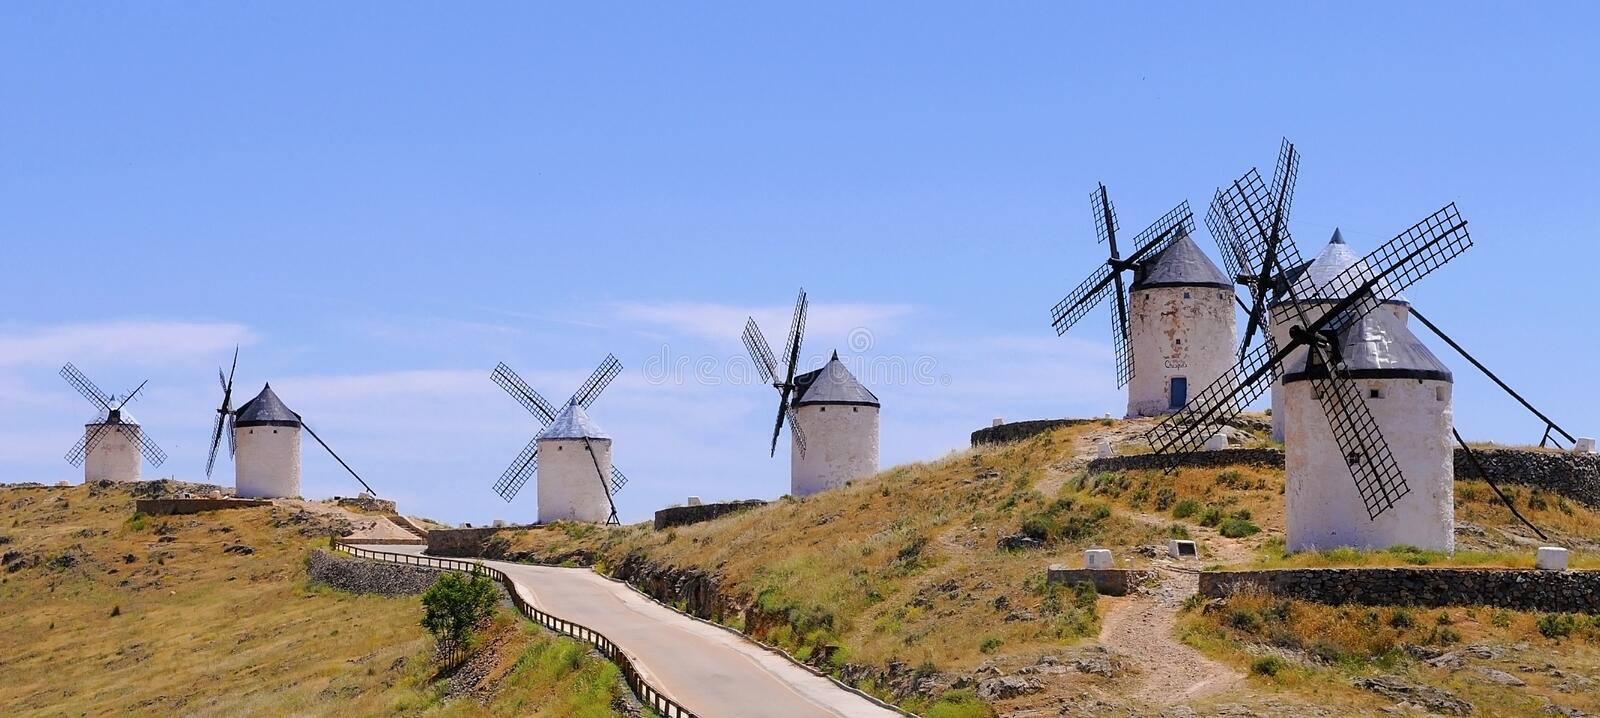 Traditional windmills, Consuegra spain stock images